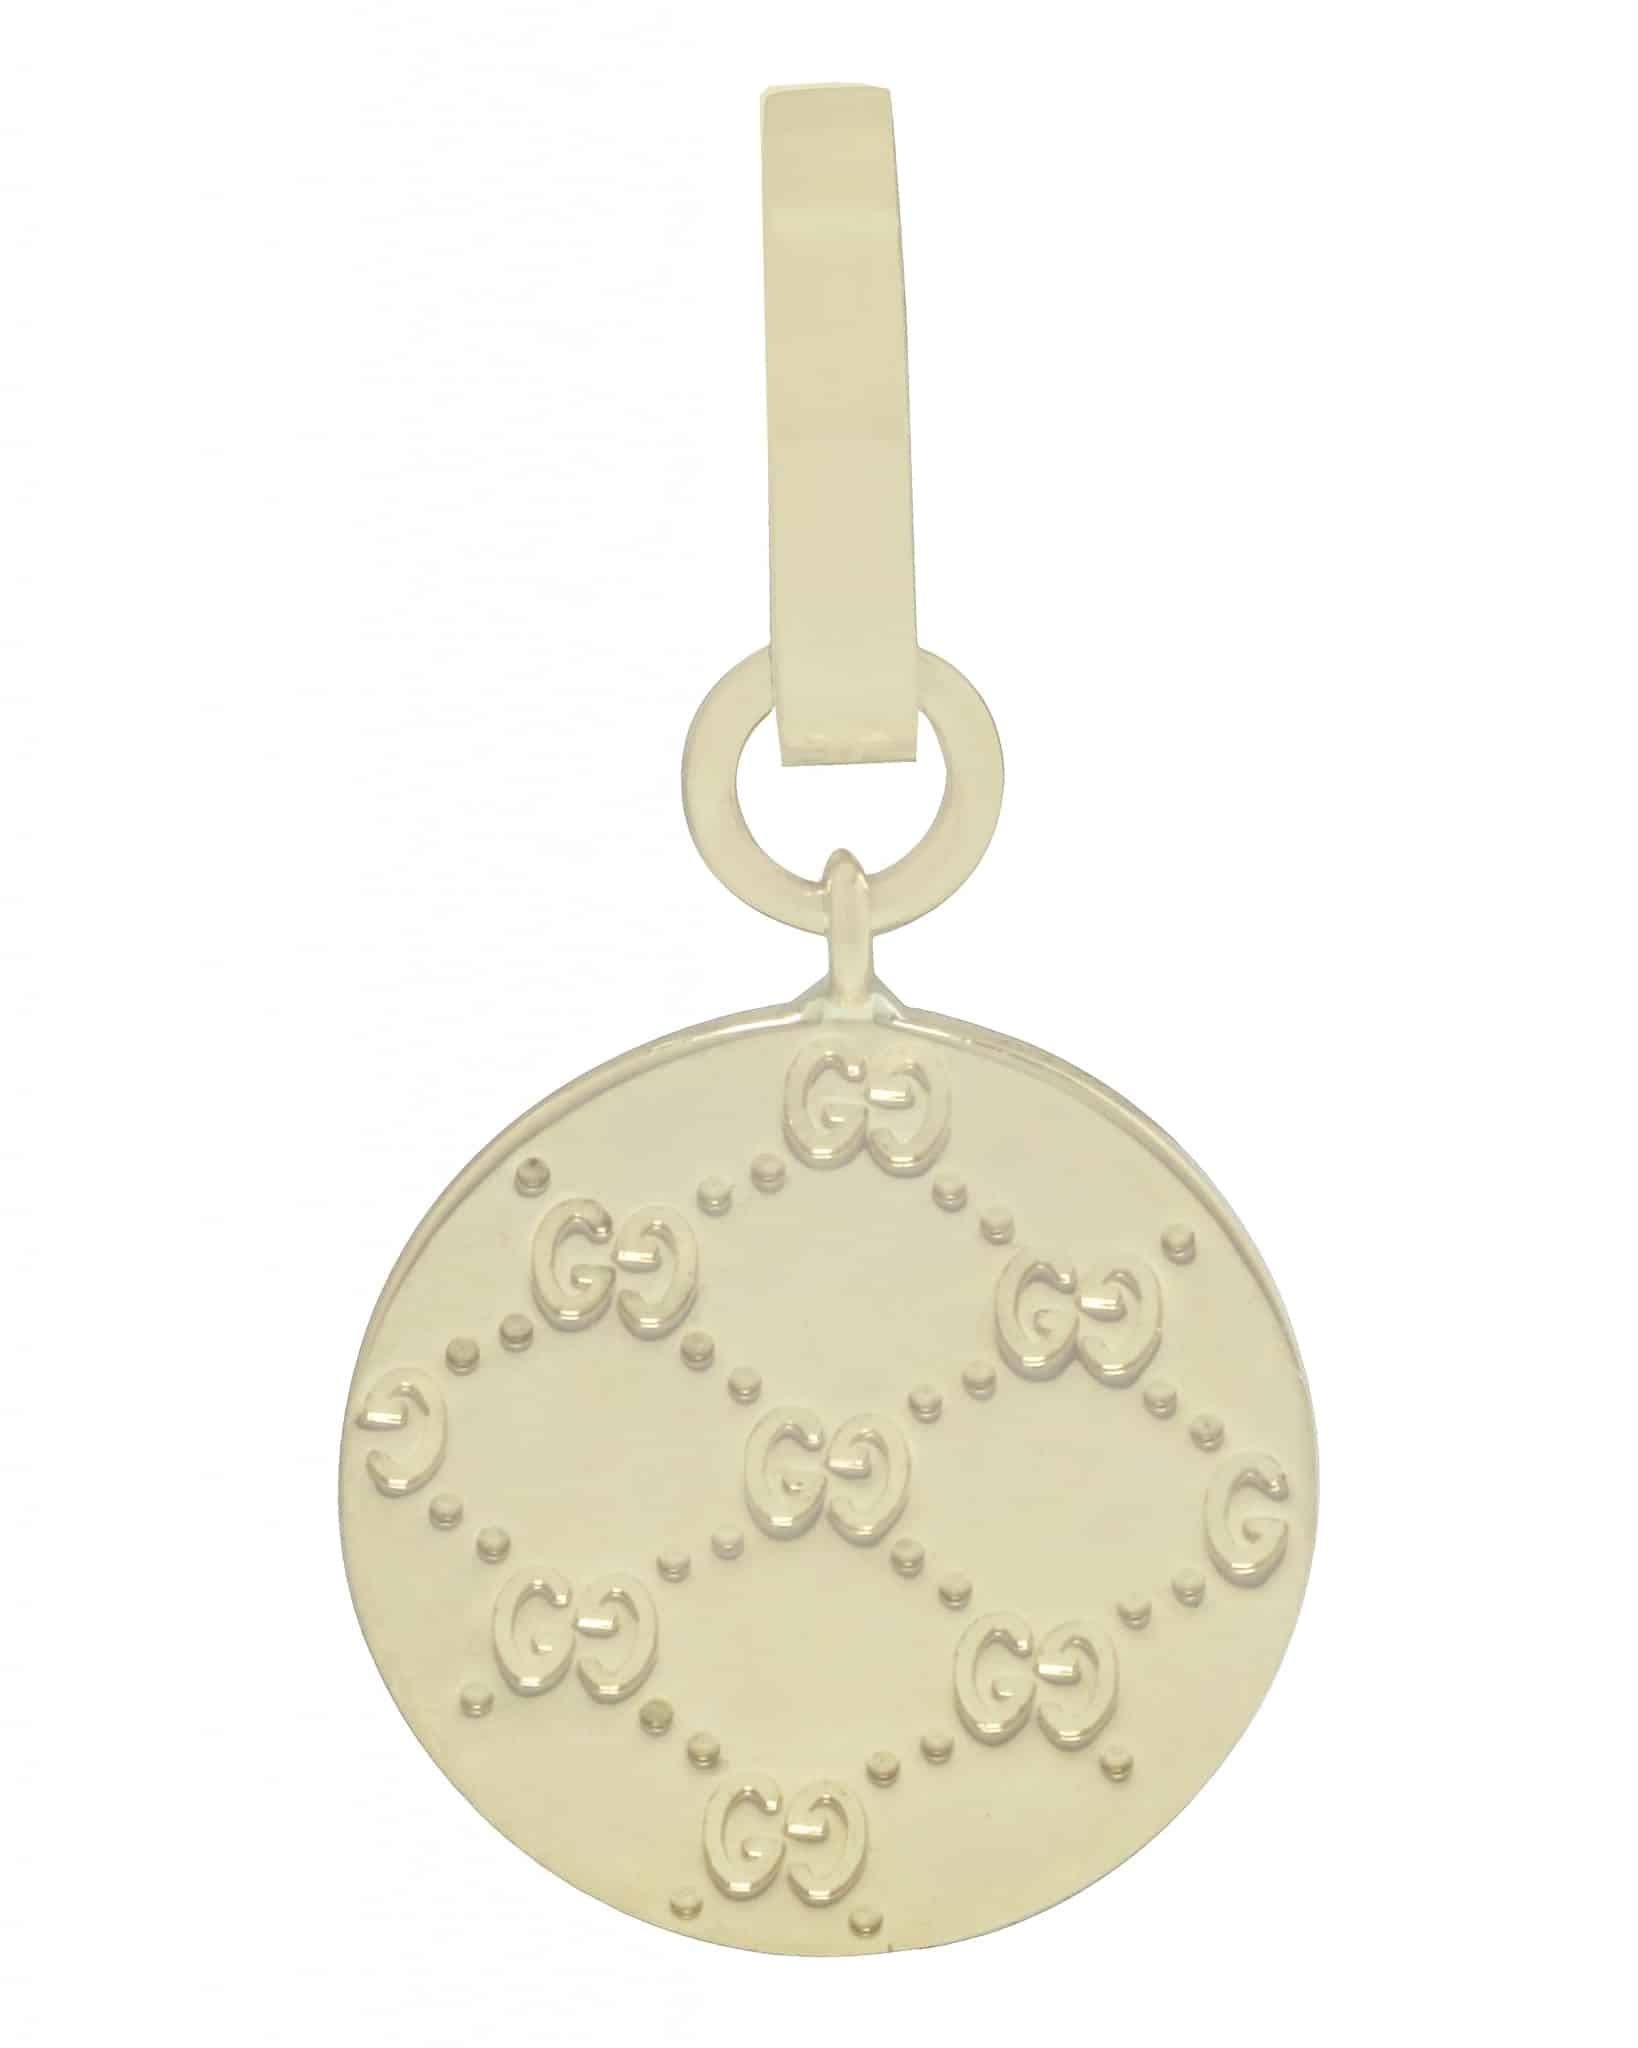 Gucci 18K Yellow Gold Icons Charm 163745J85008000